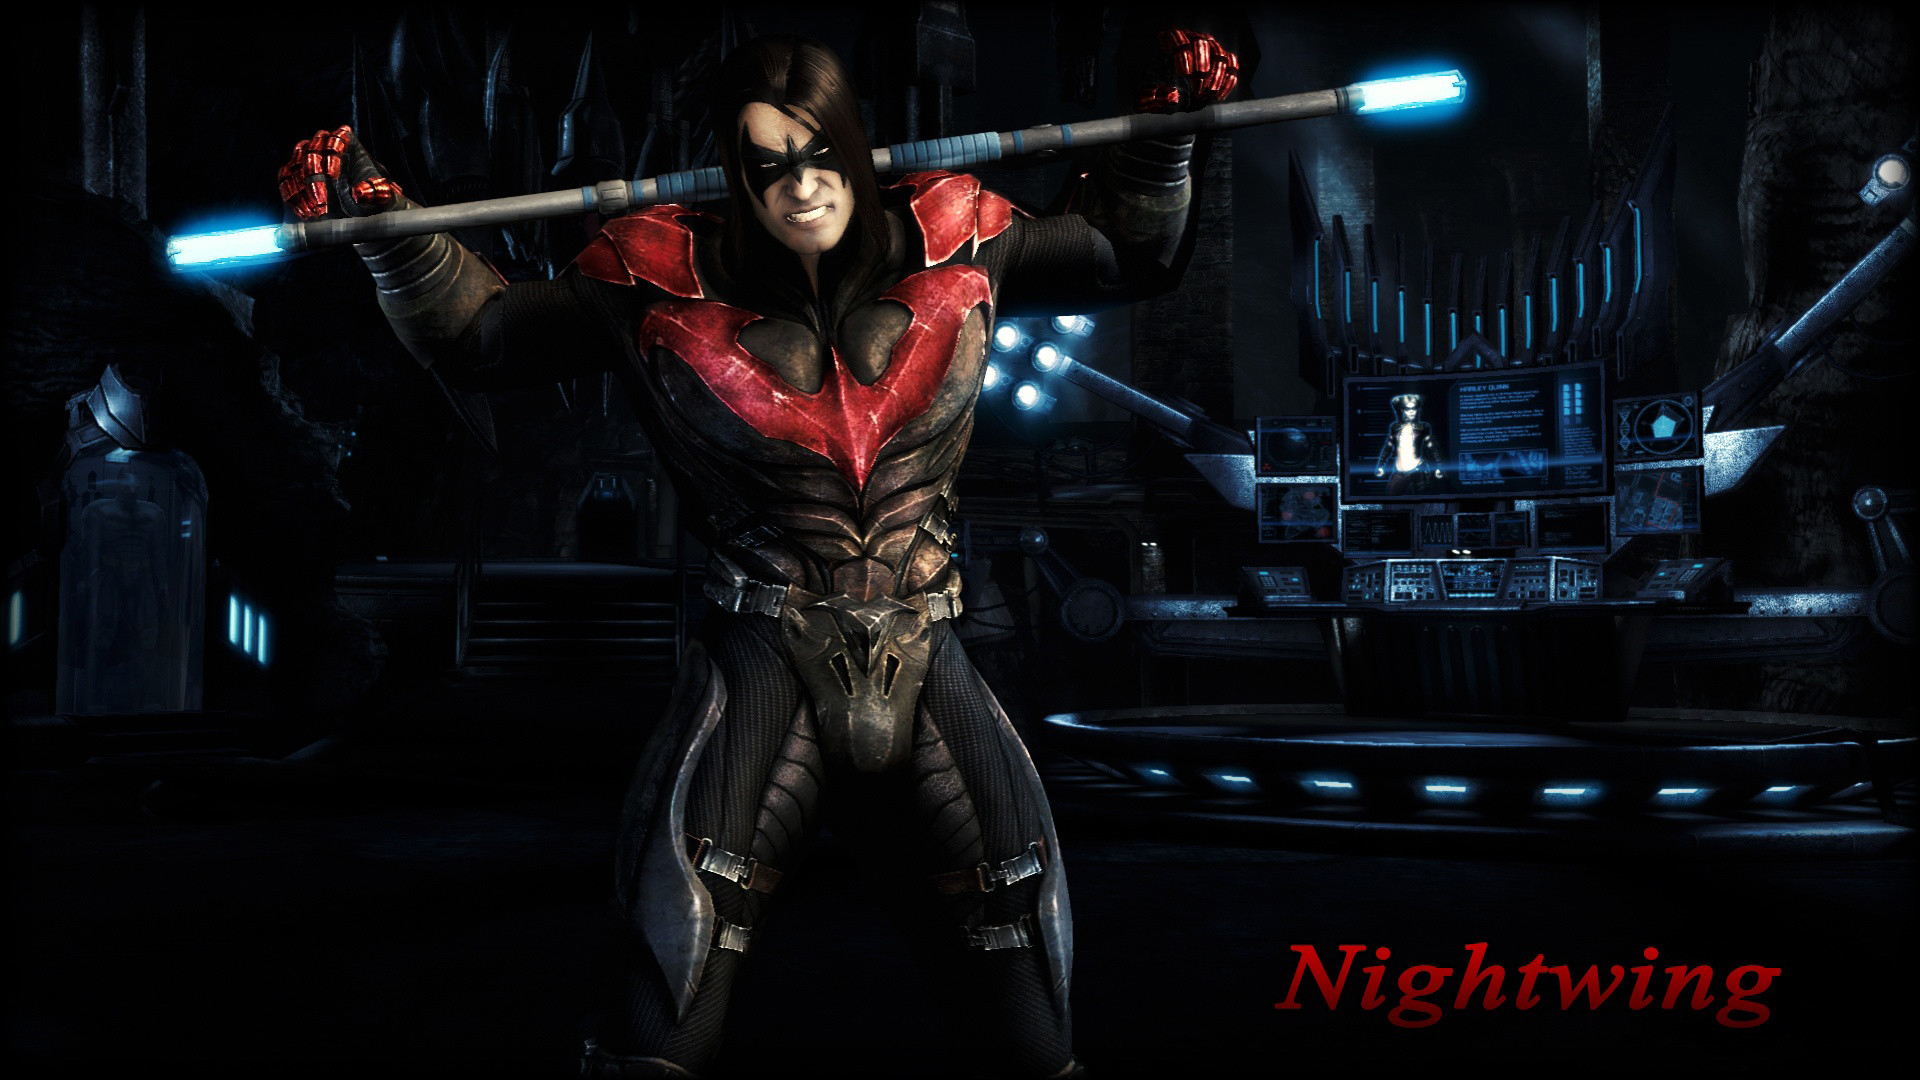 Res: 1920x1080, Nightwing Wallpapers HD Free Download.